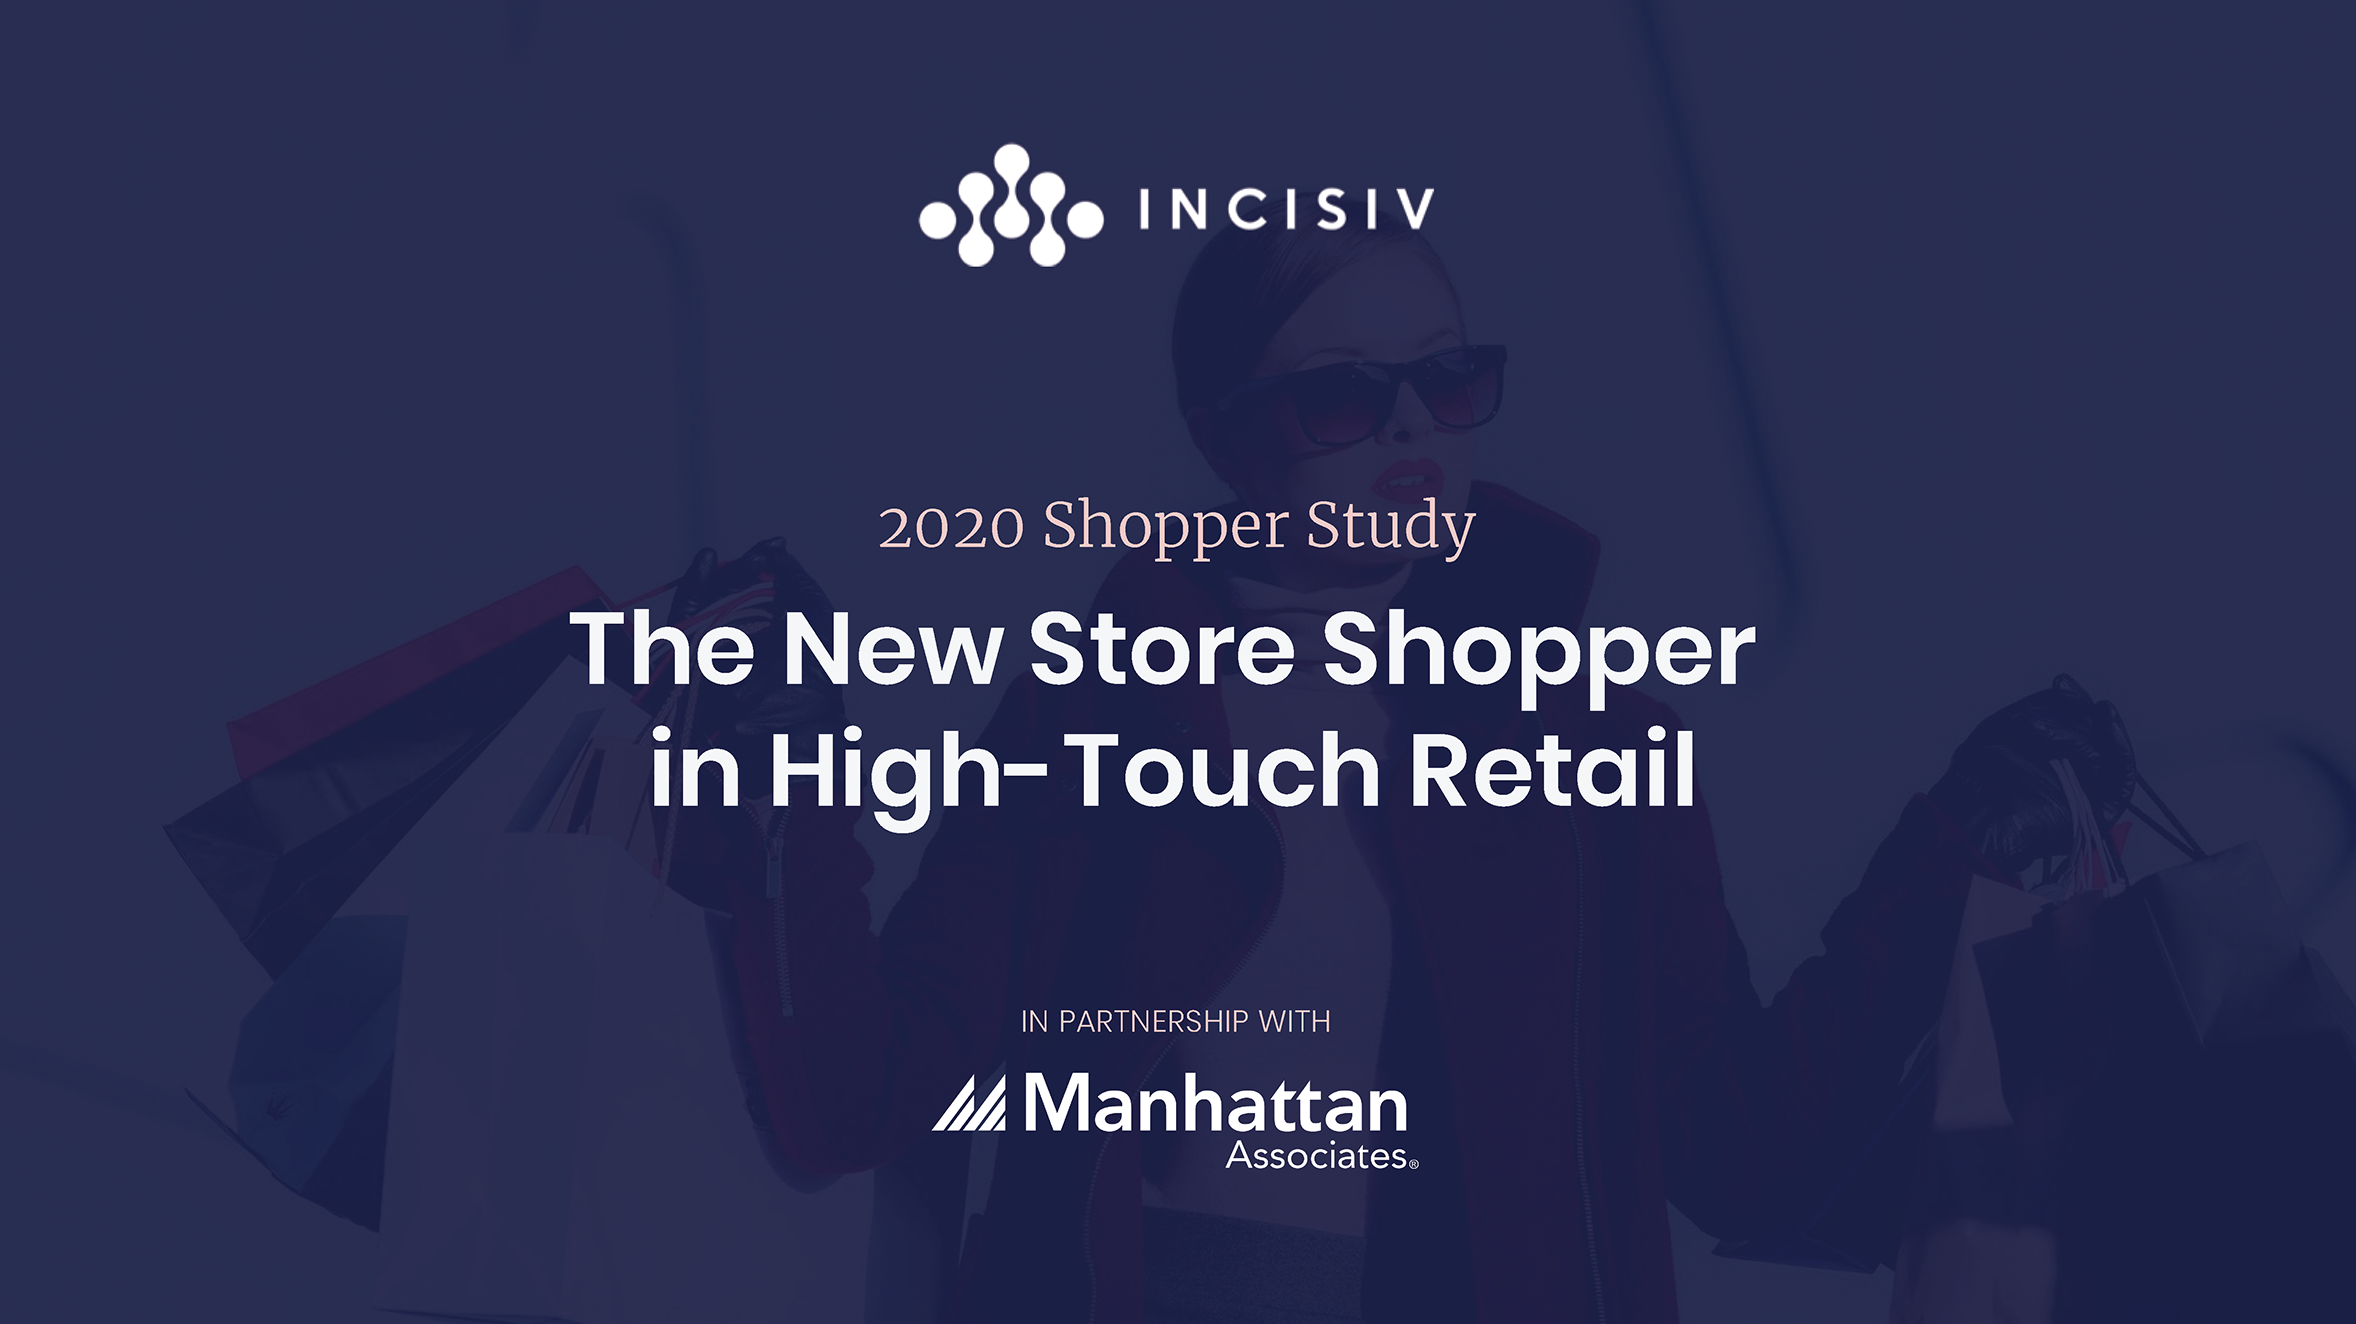 The New Store Shopper in High-Touch Retail